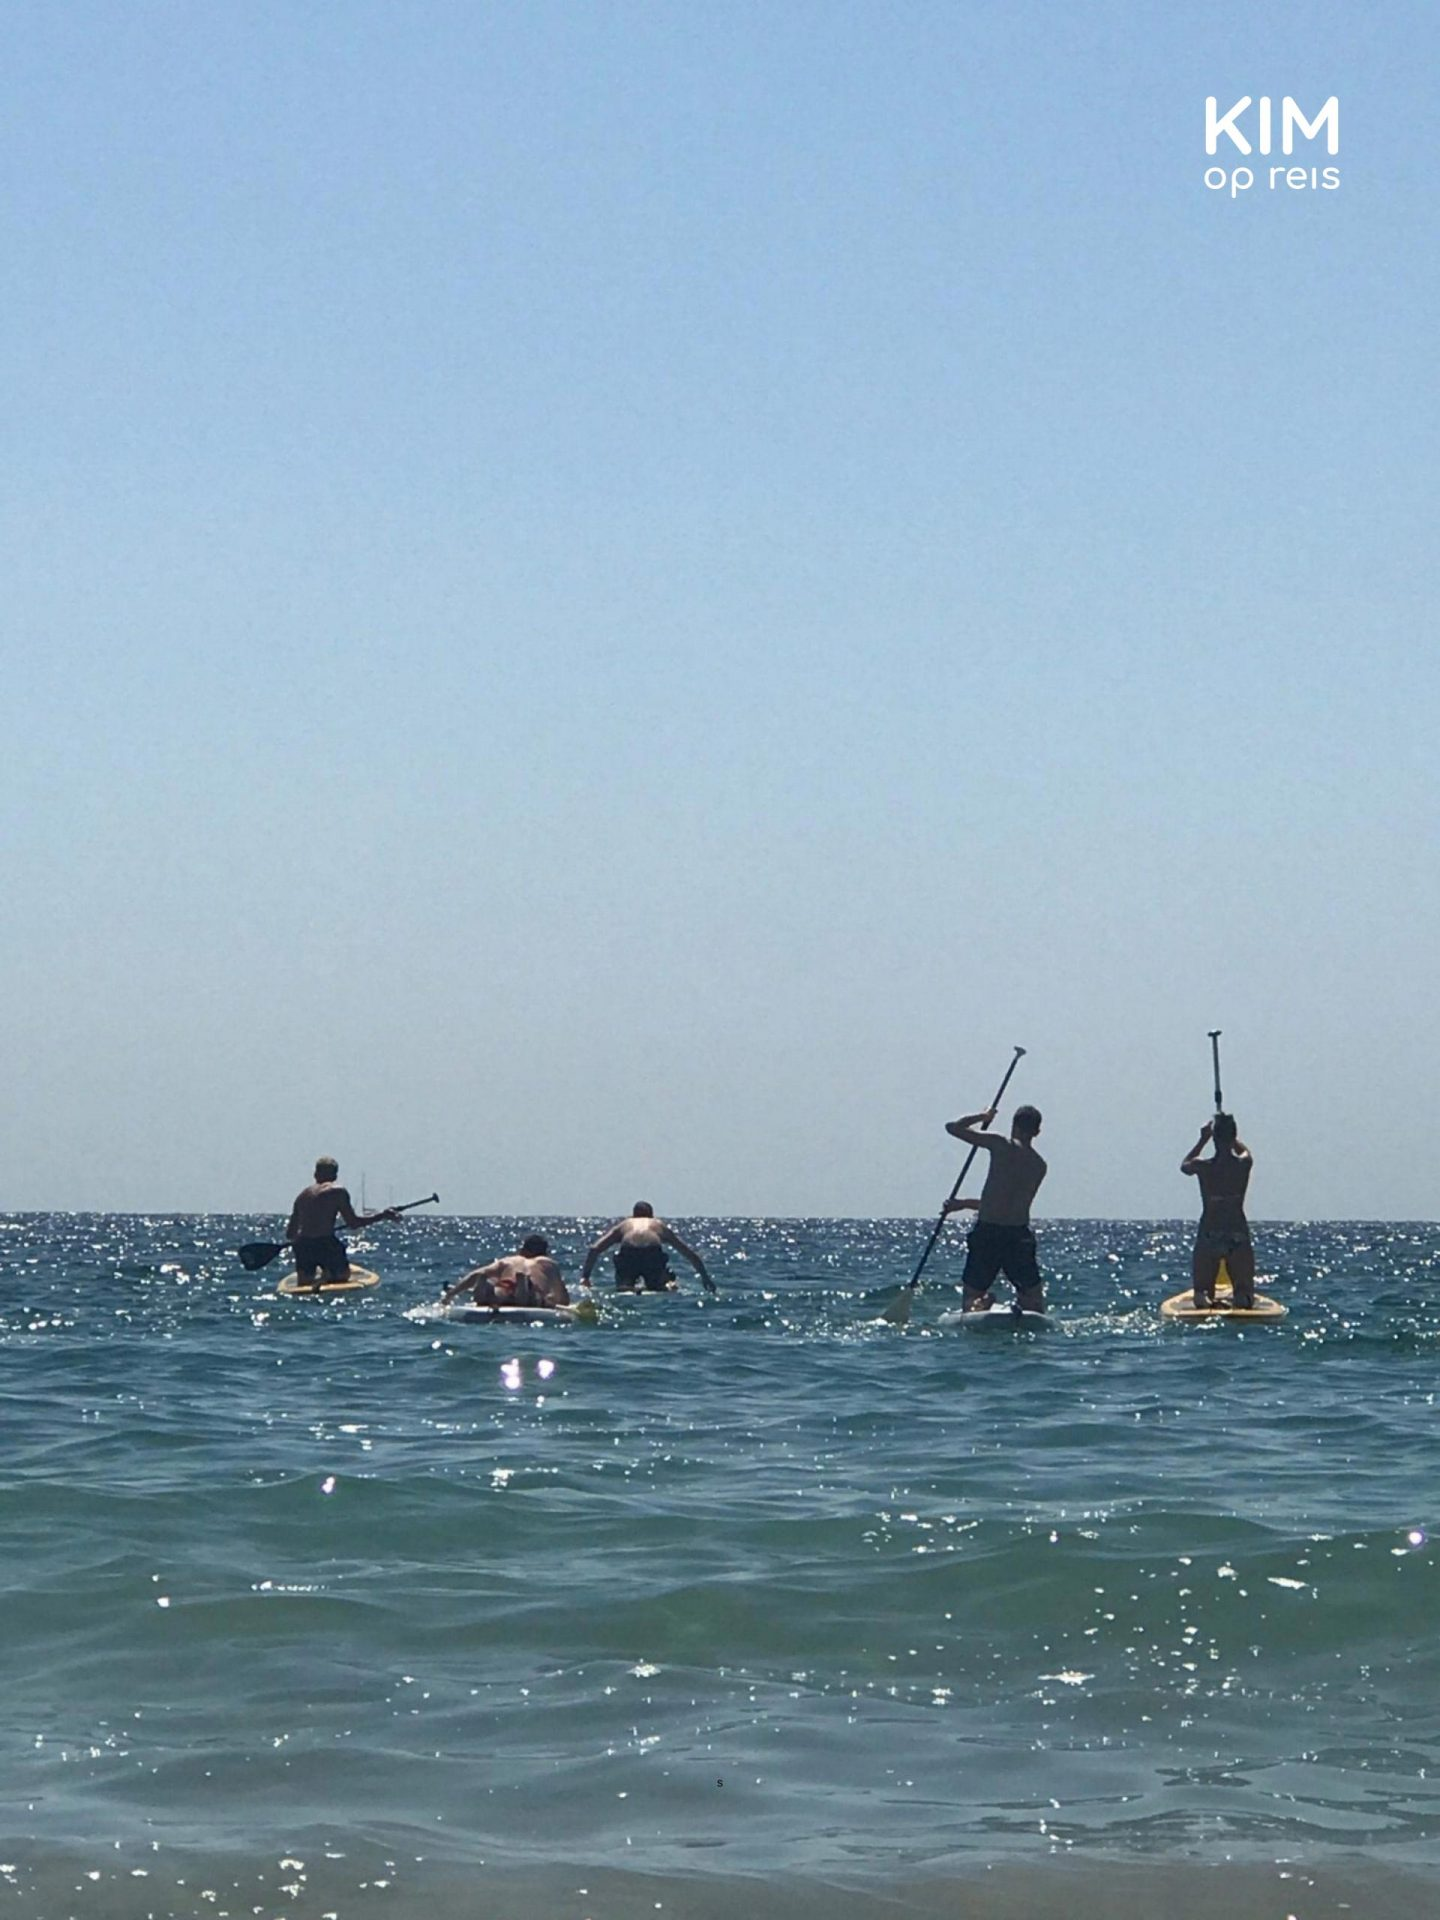 SUP Ibiza: A group of people goes out to sea, still sitting on the knees on the sup board